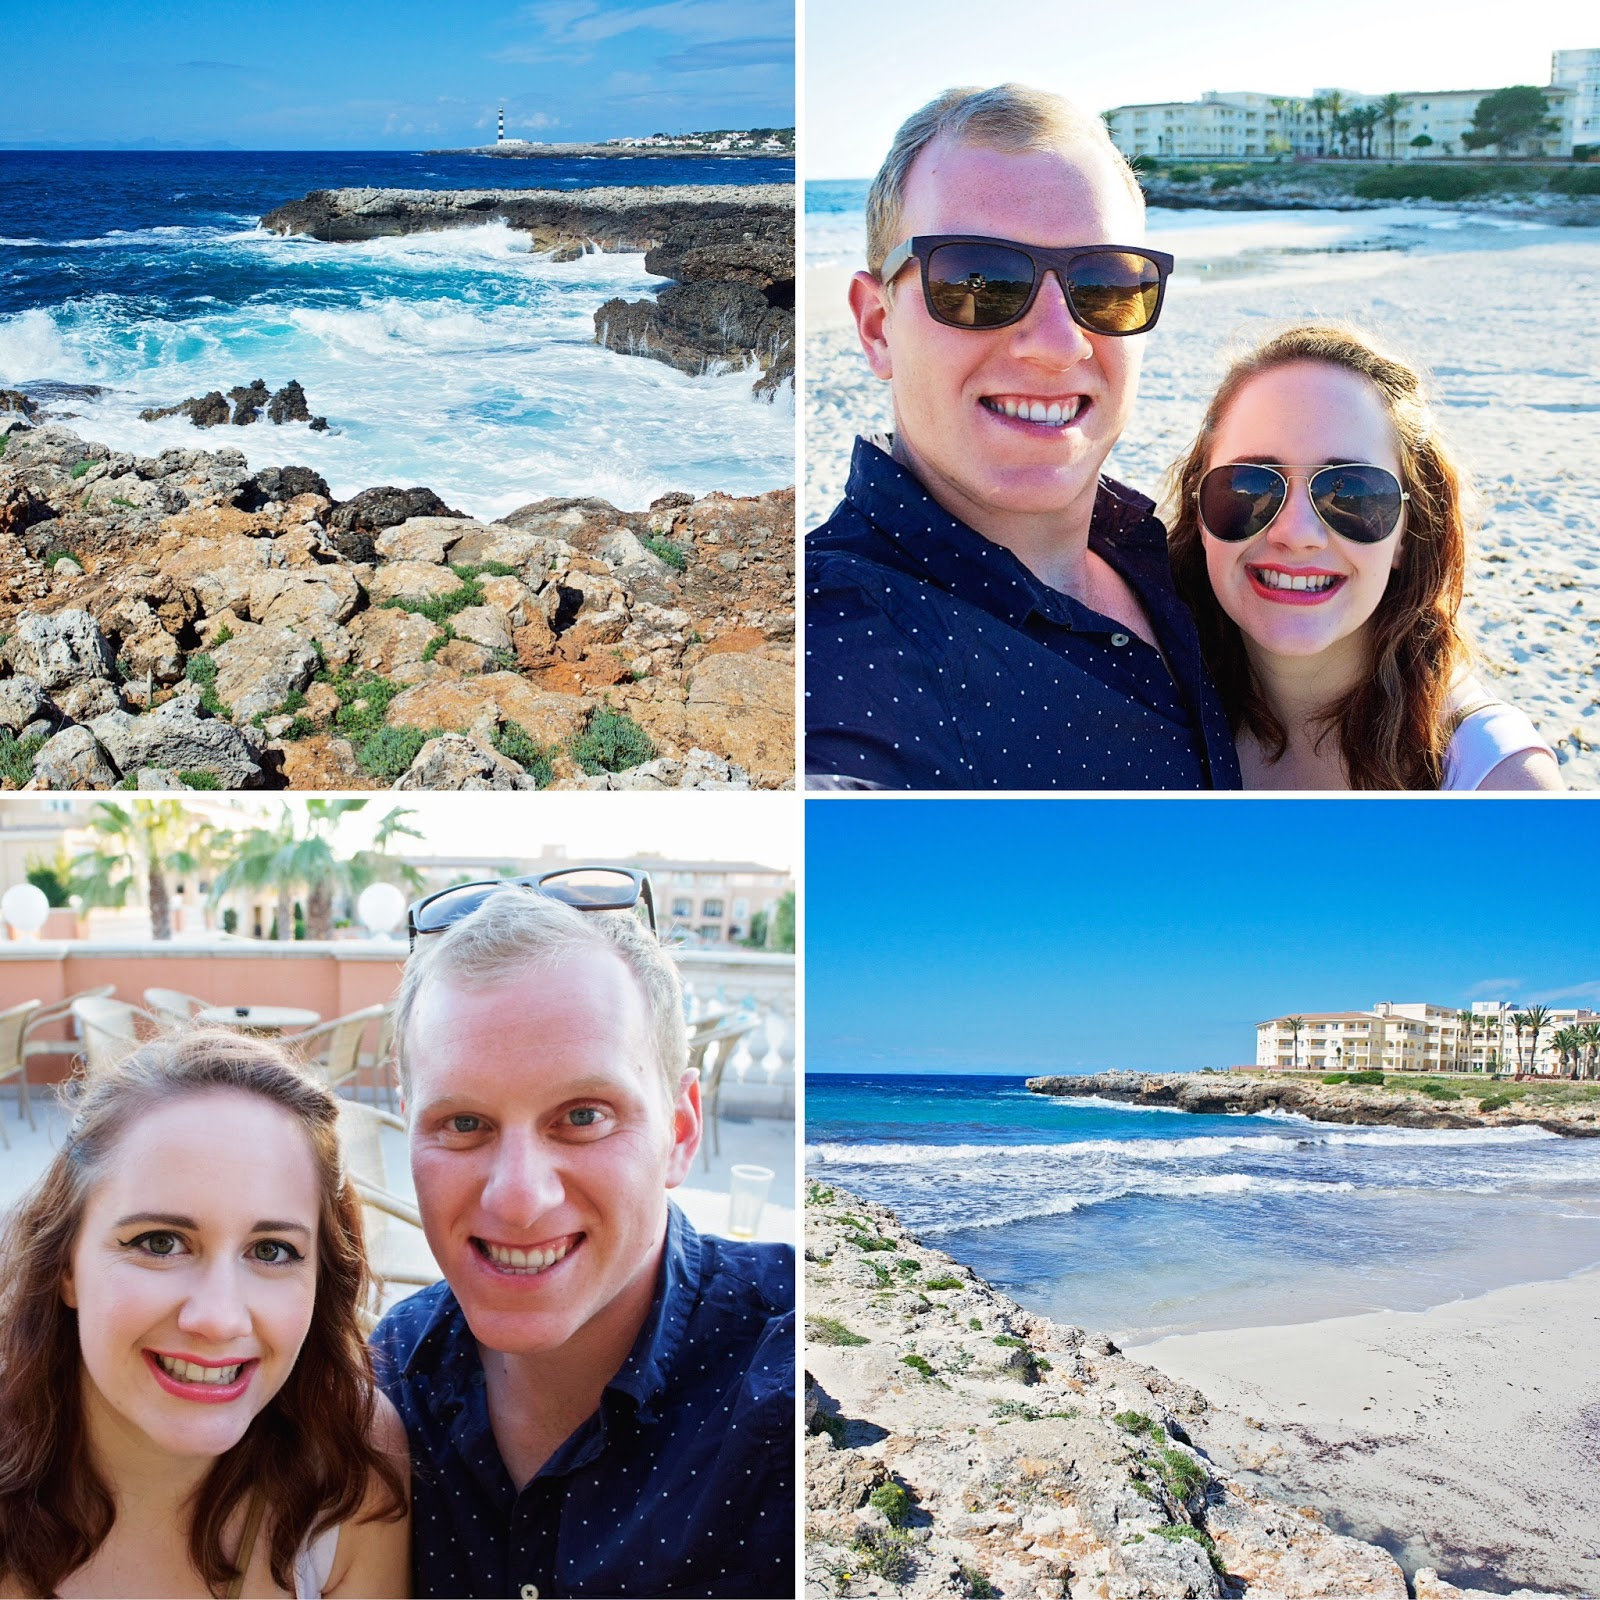 A montage of photos from Menorca